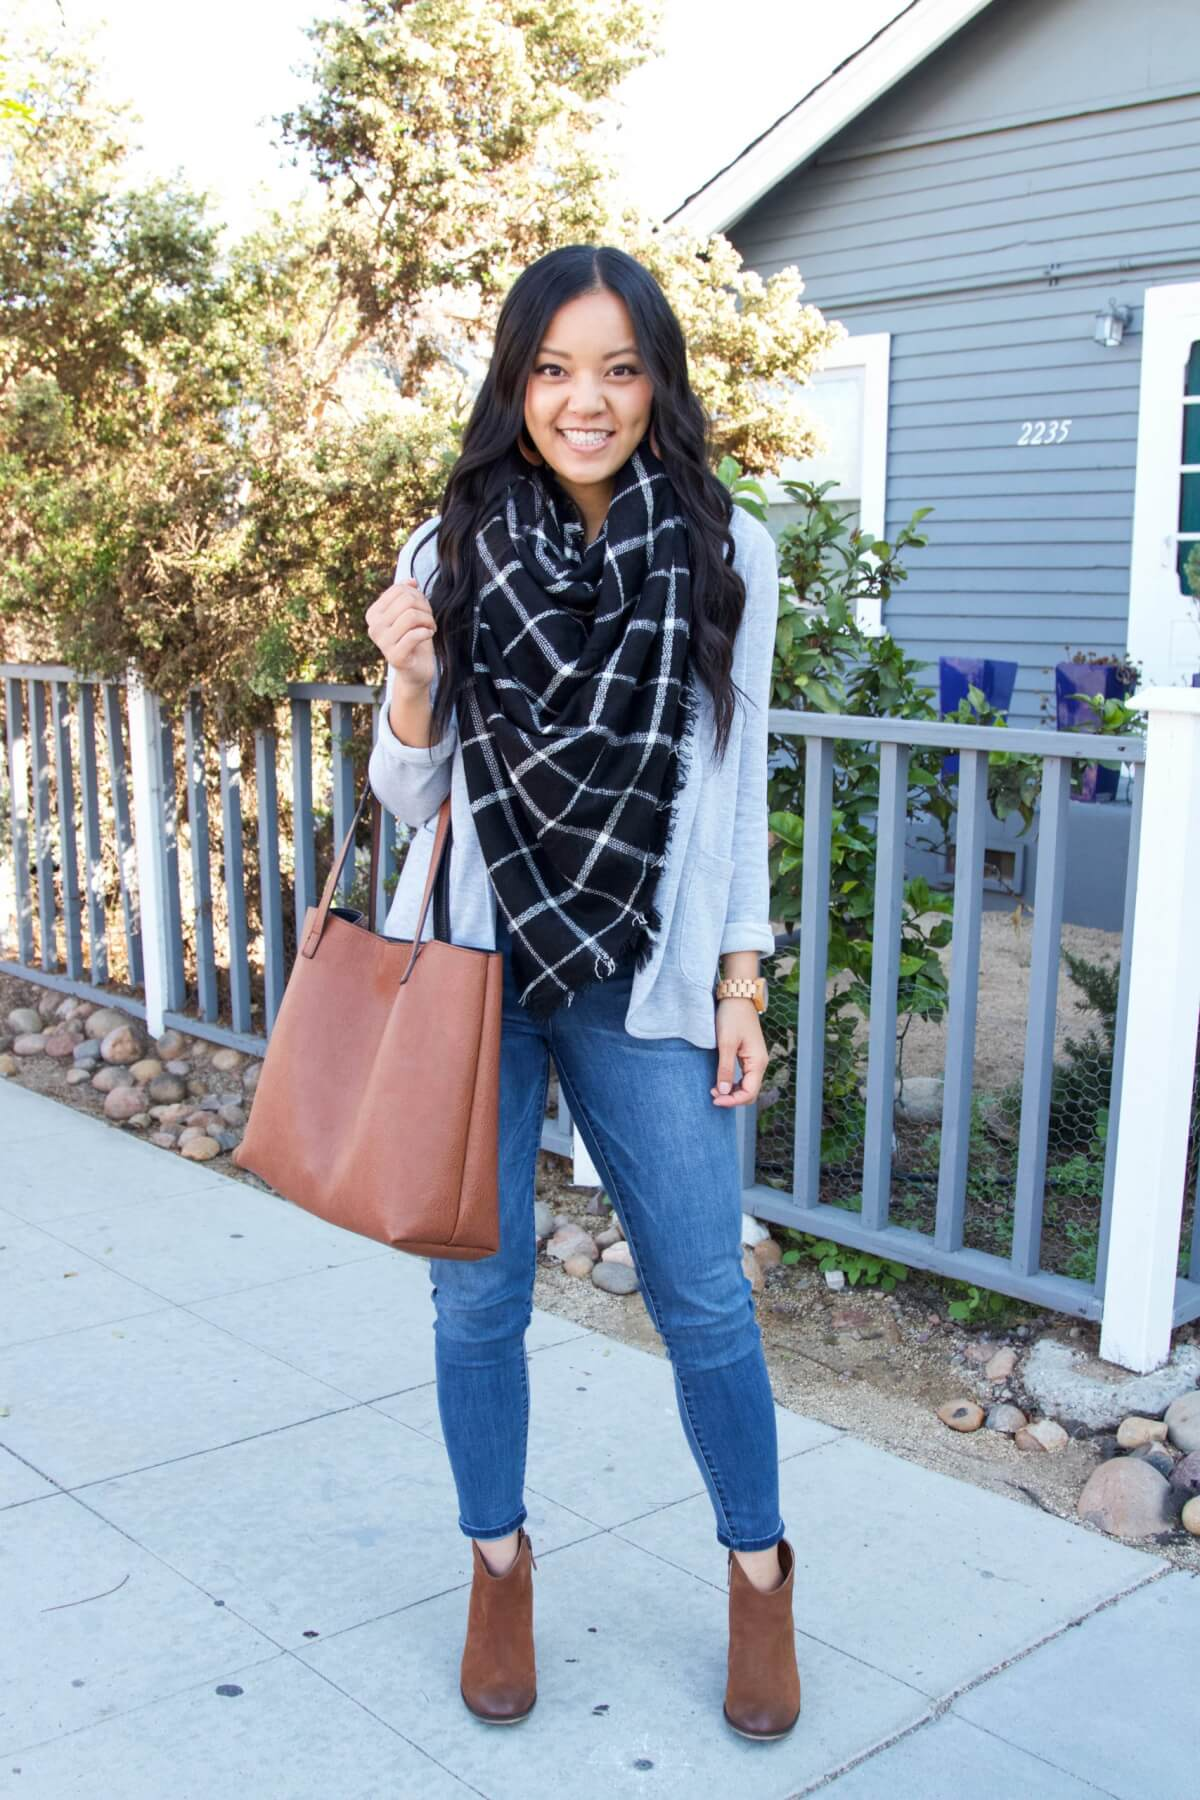 Winter Jeans Outfit: grey cardigan + black and white plaid blanket scarf + skinny jeans + tan suede booties + cognac tote + tan leather earrings